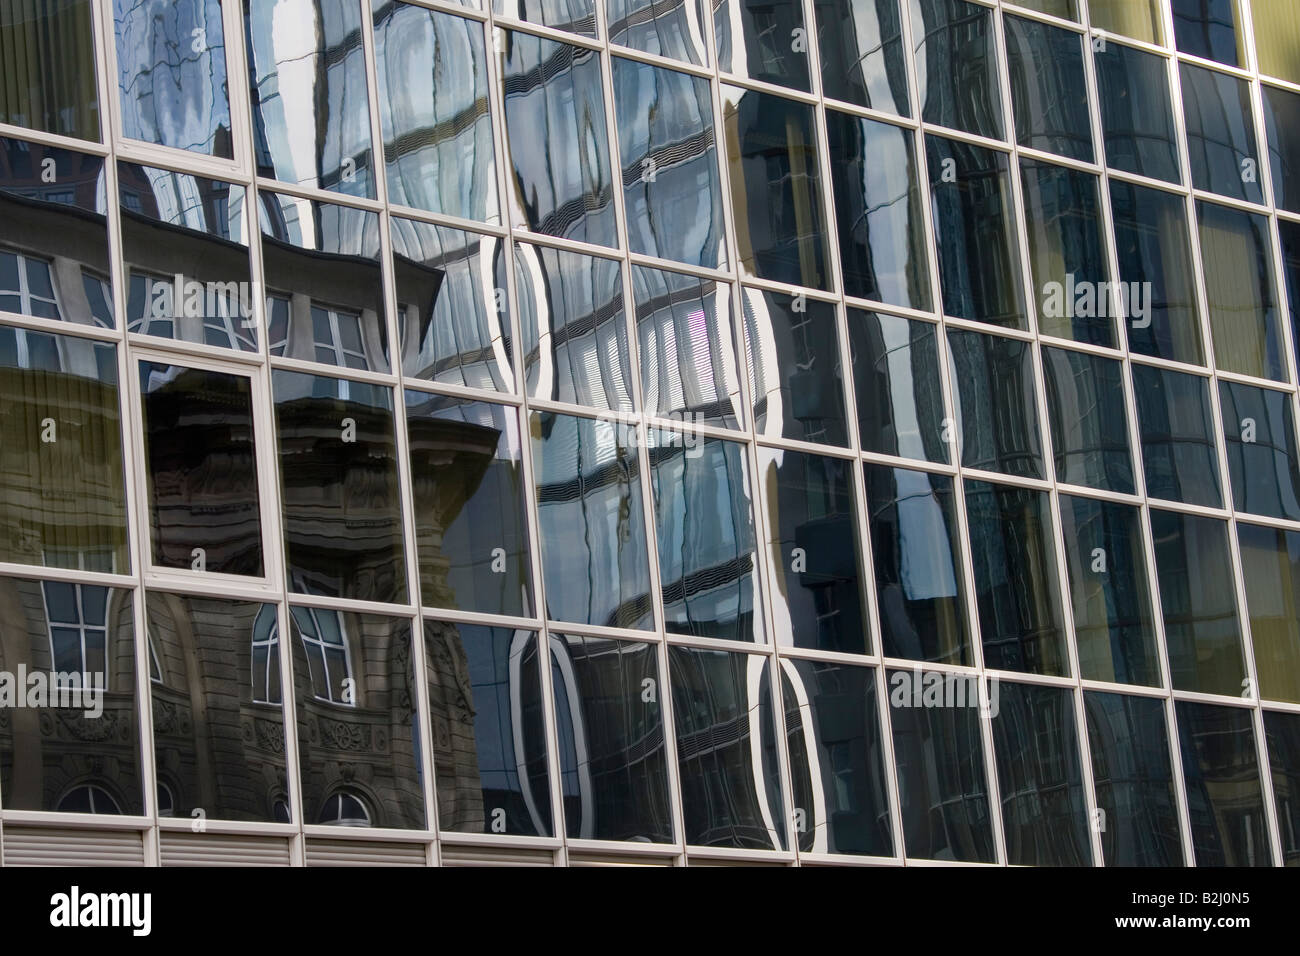 banking housees business district financial metropolis frankfurt am main - Stock Image